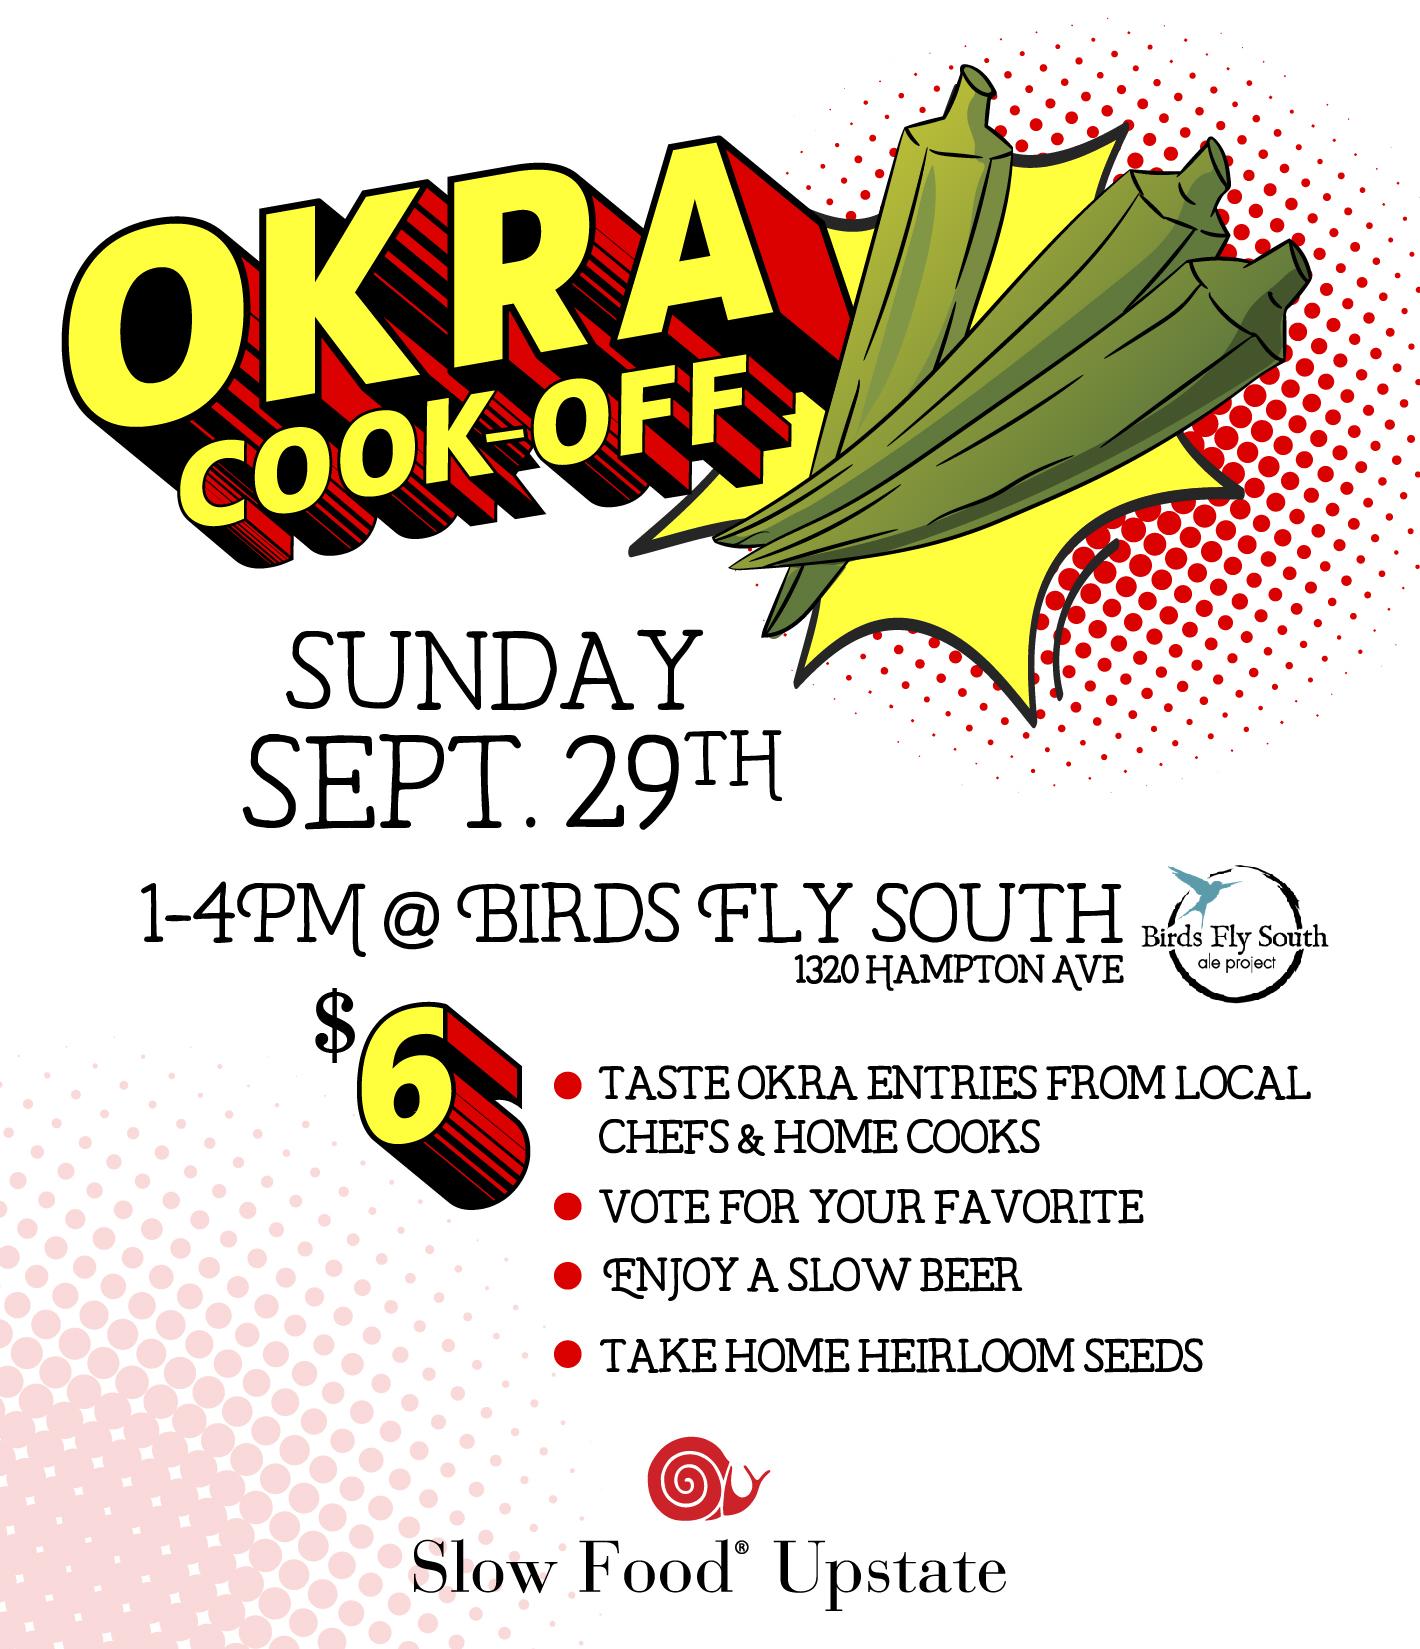 Slow Food Okra Cookoff - Greenville, SC